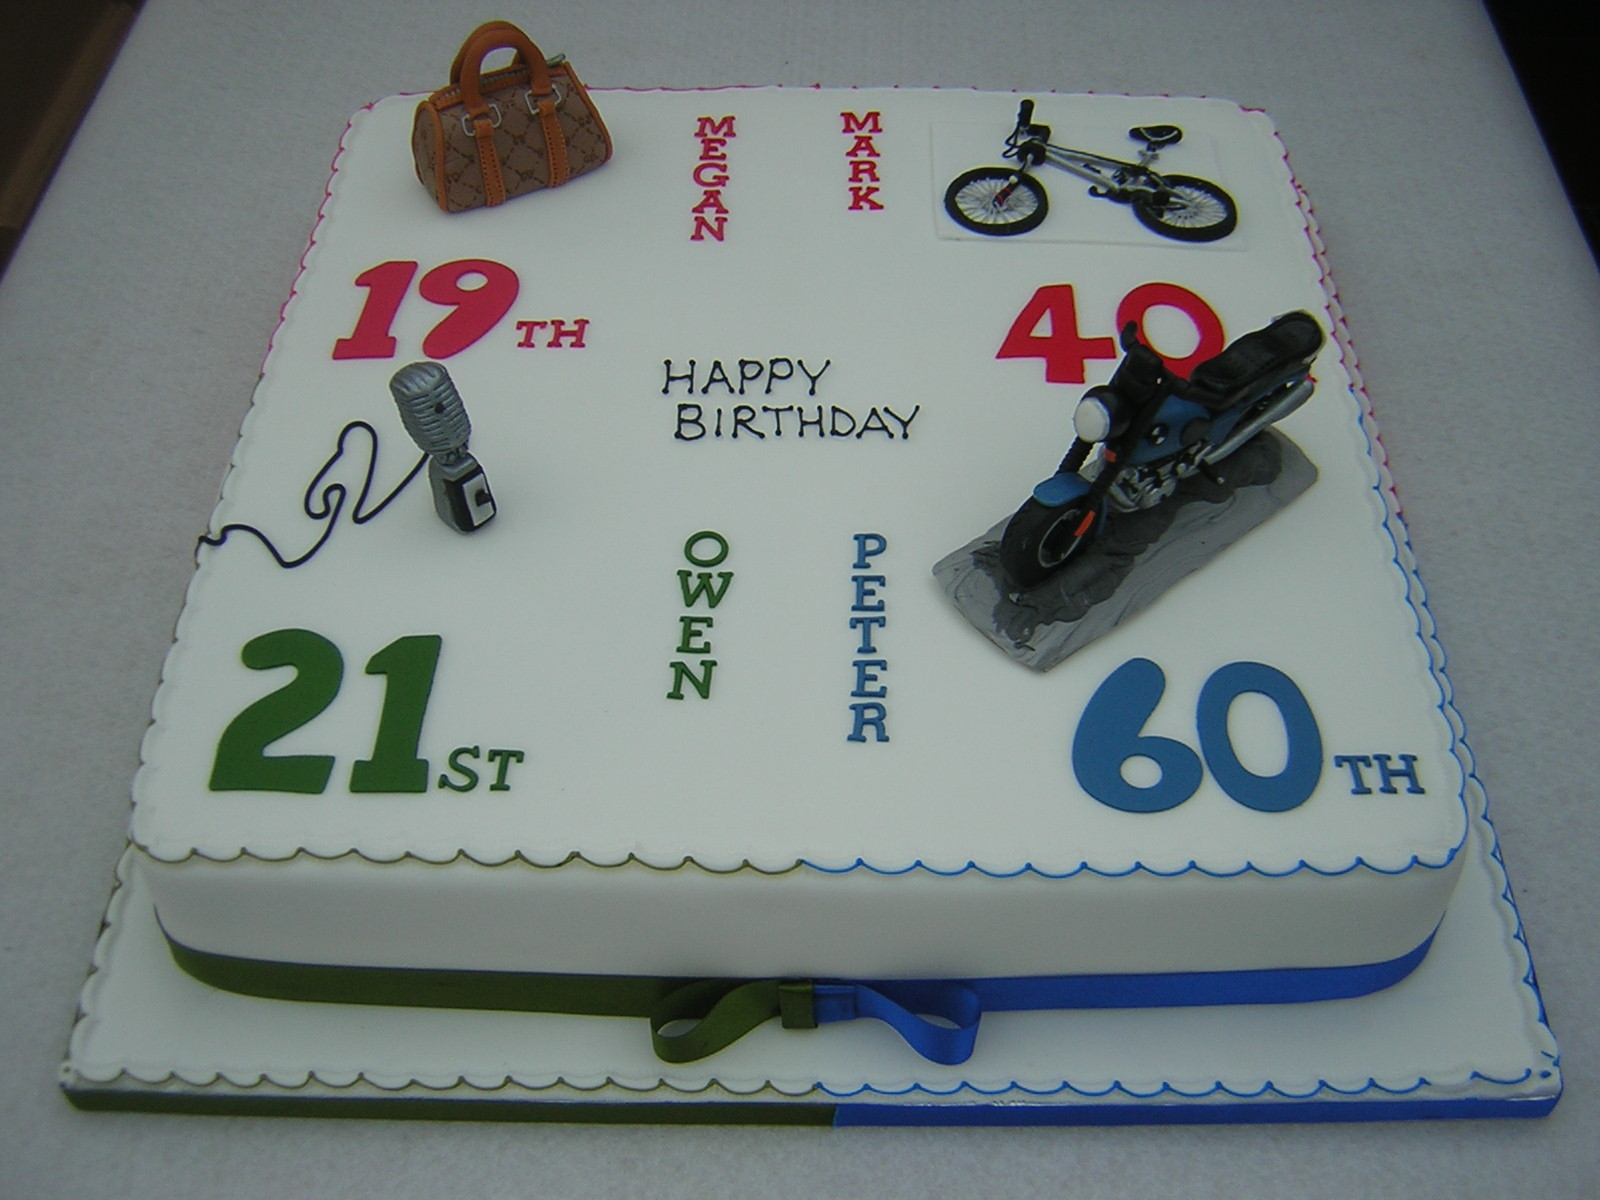 Happy Birthday Cousin Male Cakes 353k 4-happy-birthdays.jpg